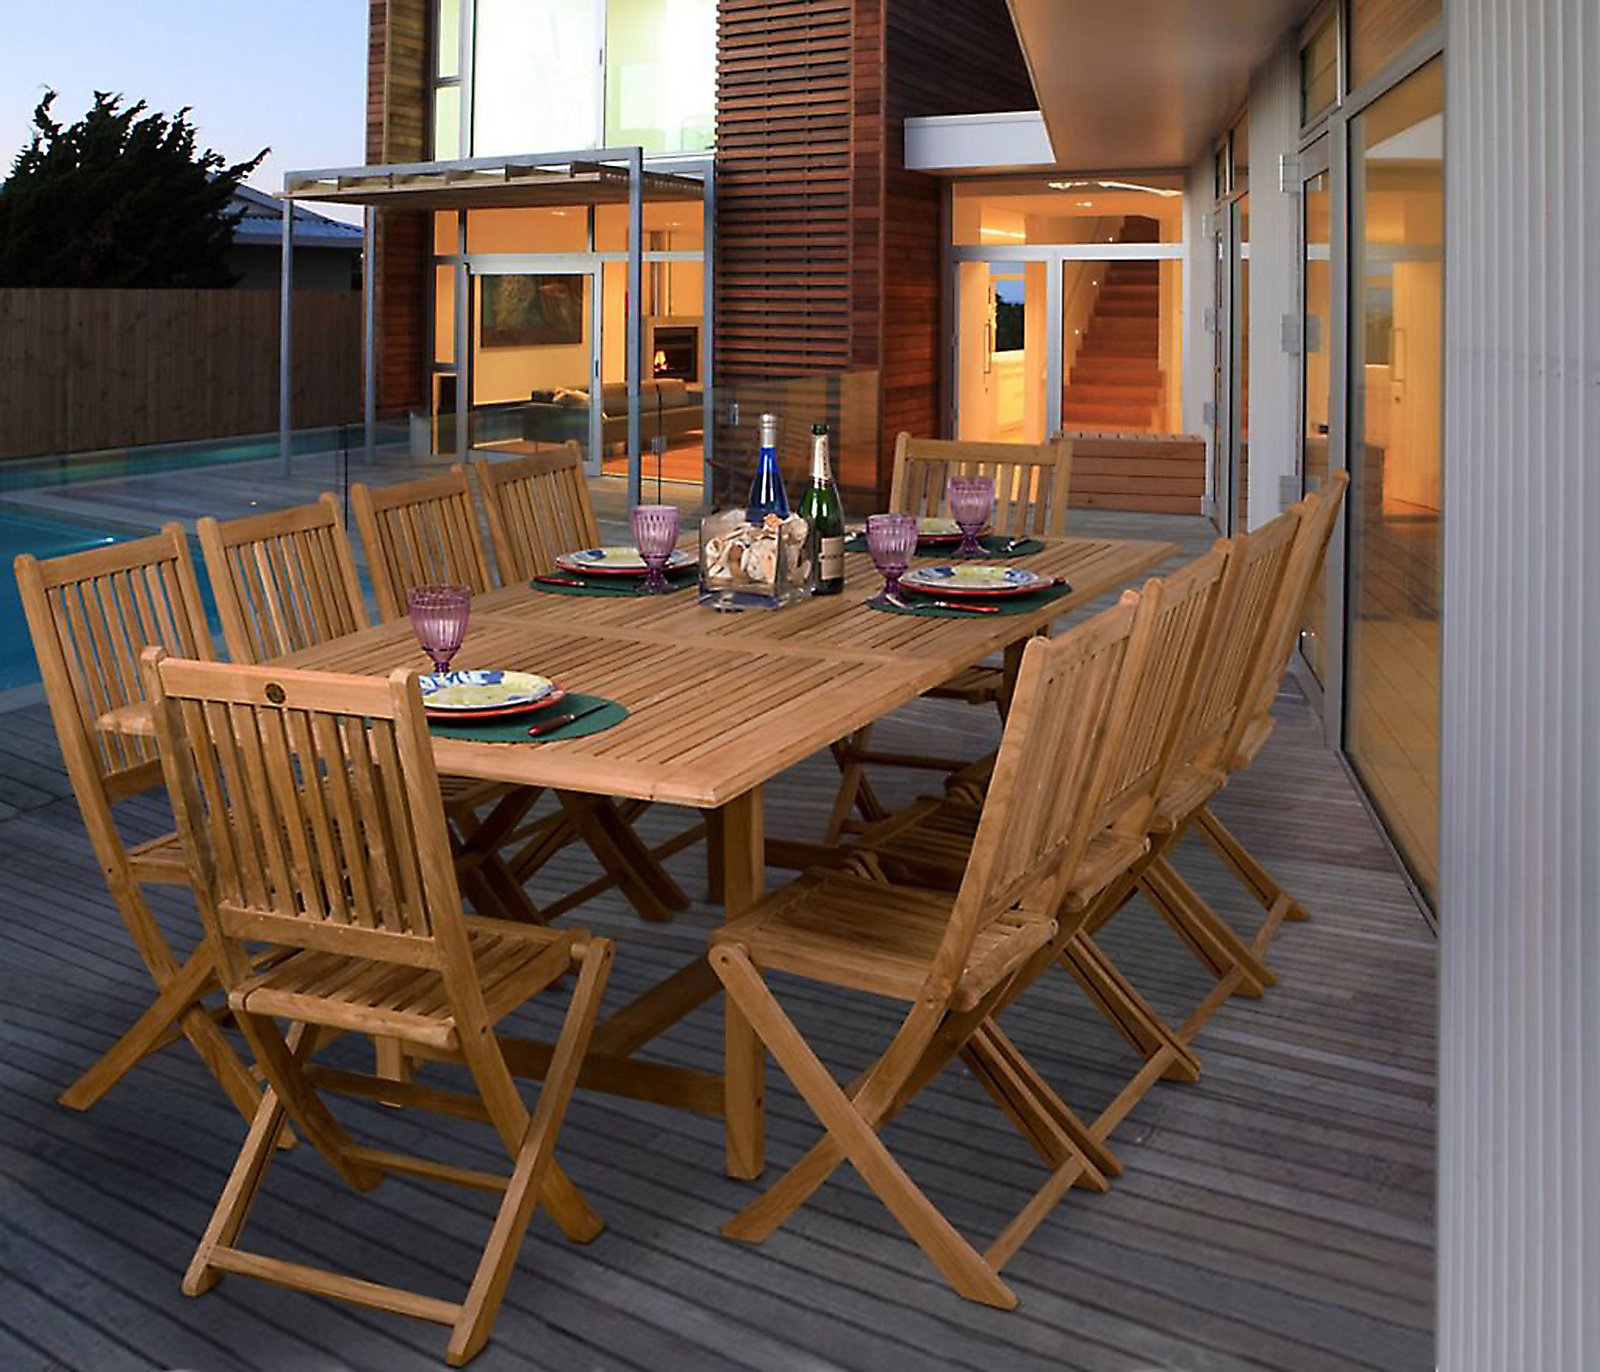 Electronics Store Adelaide Amazonia Adelaide 11 Pc Teak Wood Rectangular Patio Dining Set